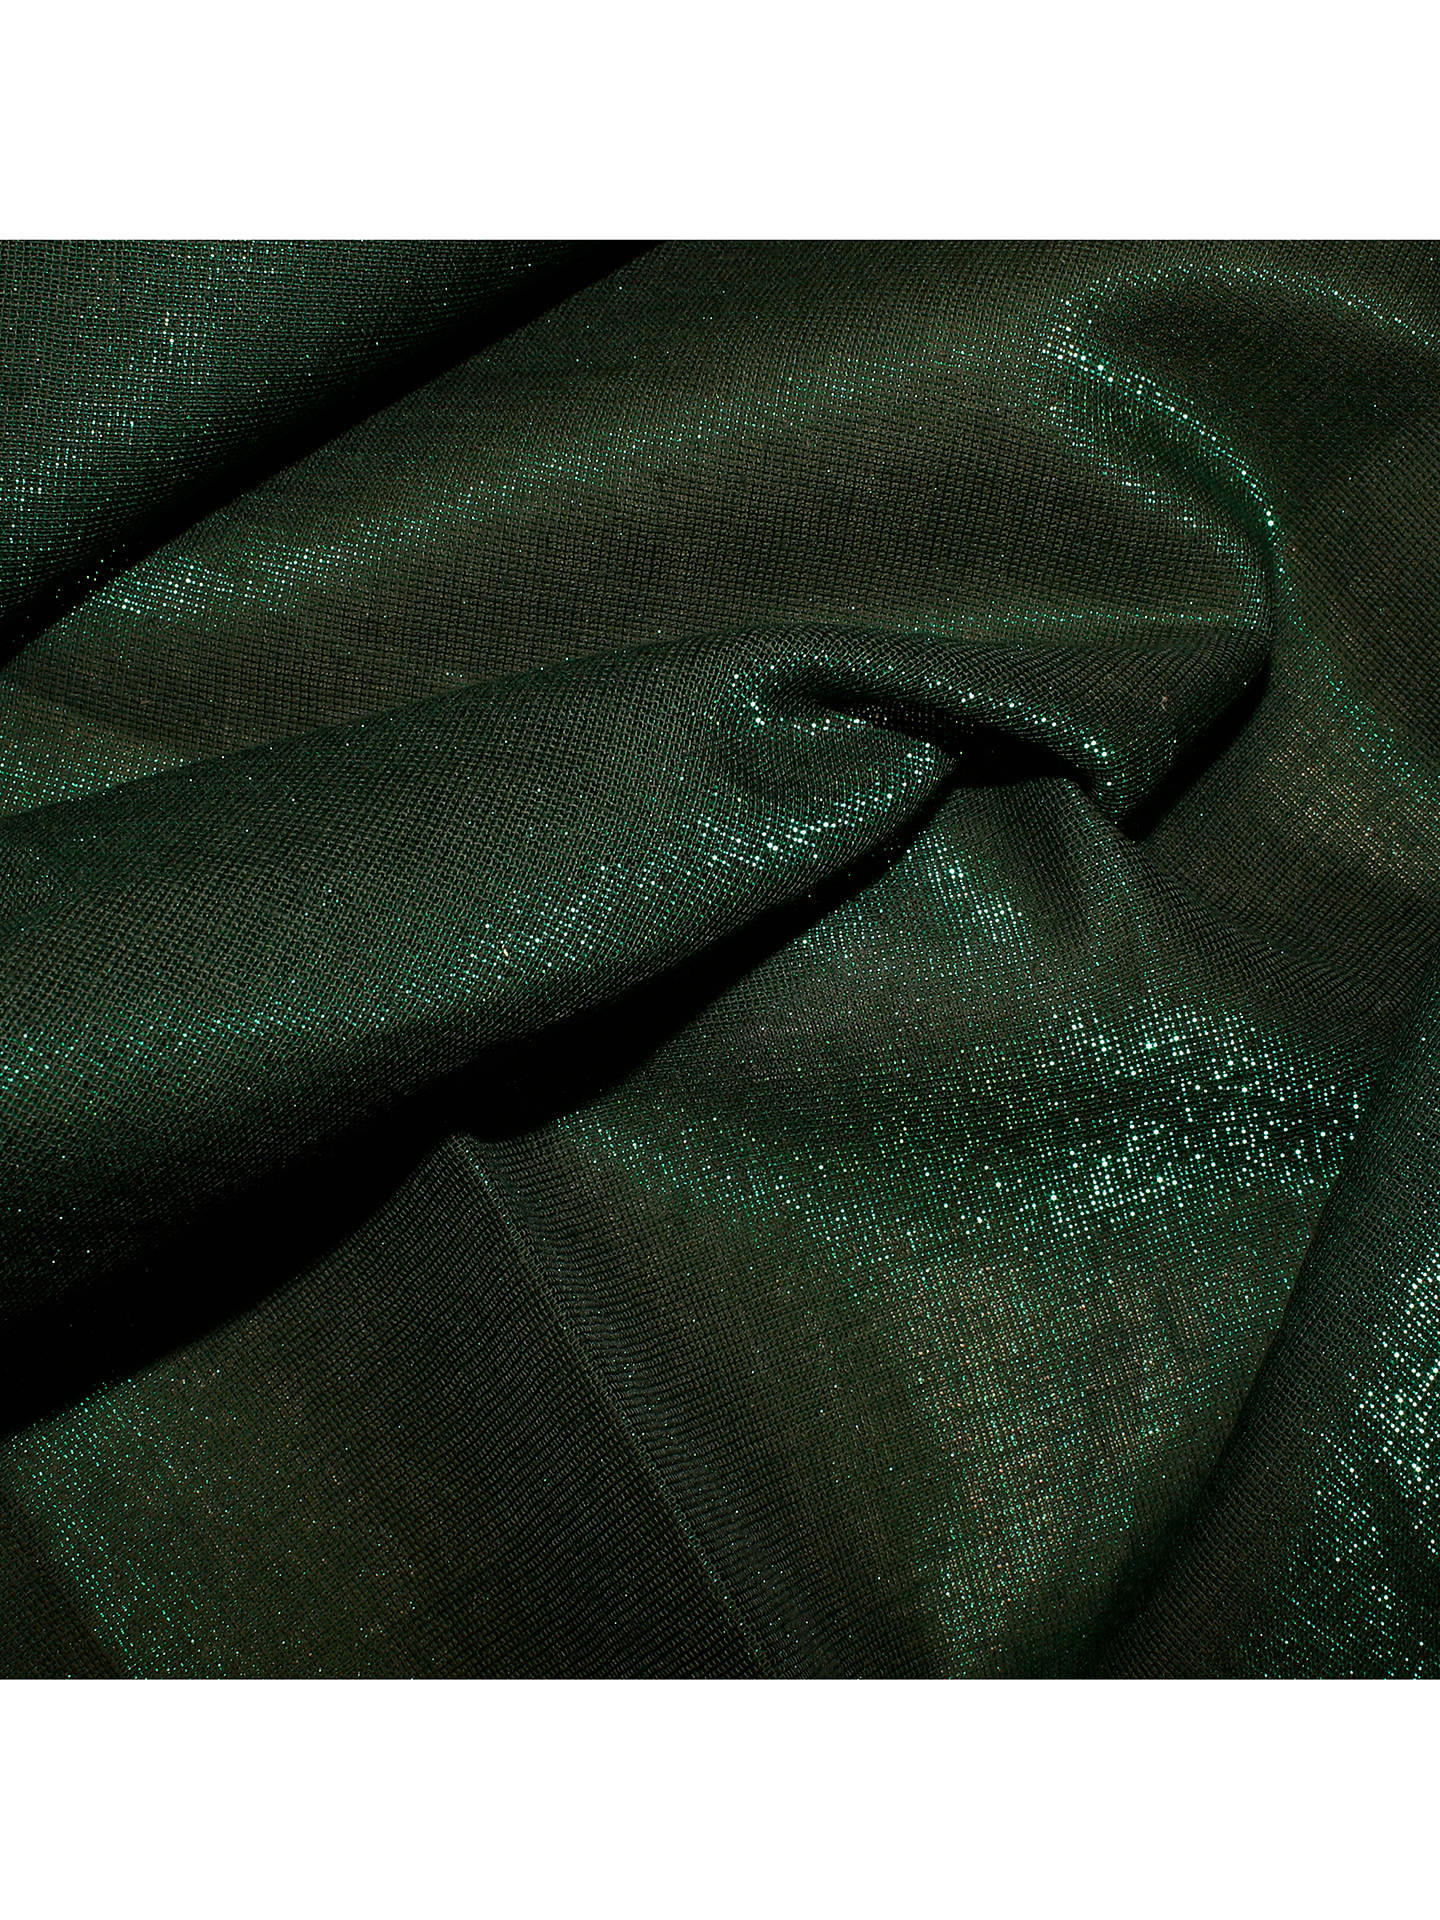 Buy Oddies Textiles Shimmer Fabric, Green Online at johnlewis.com